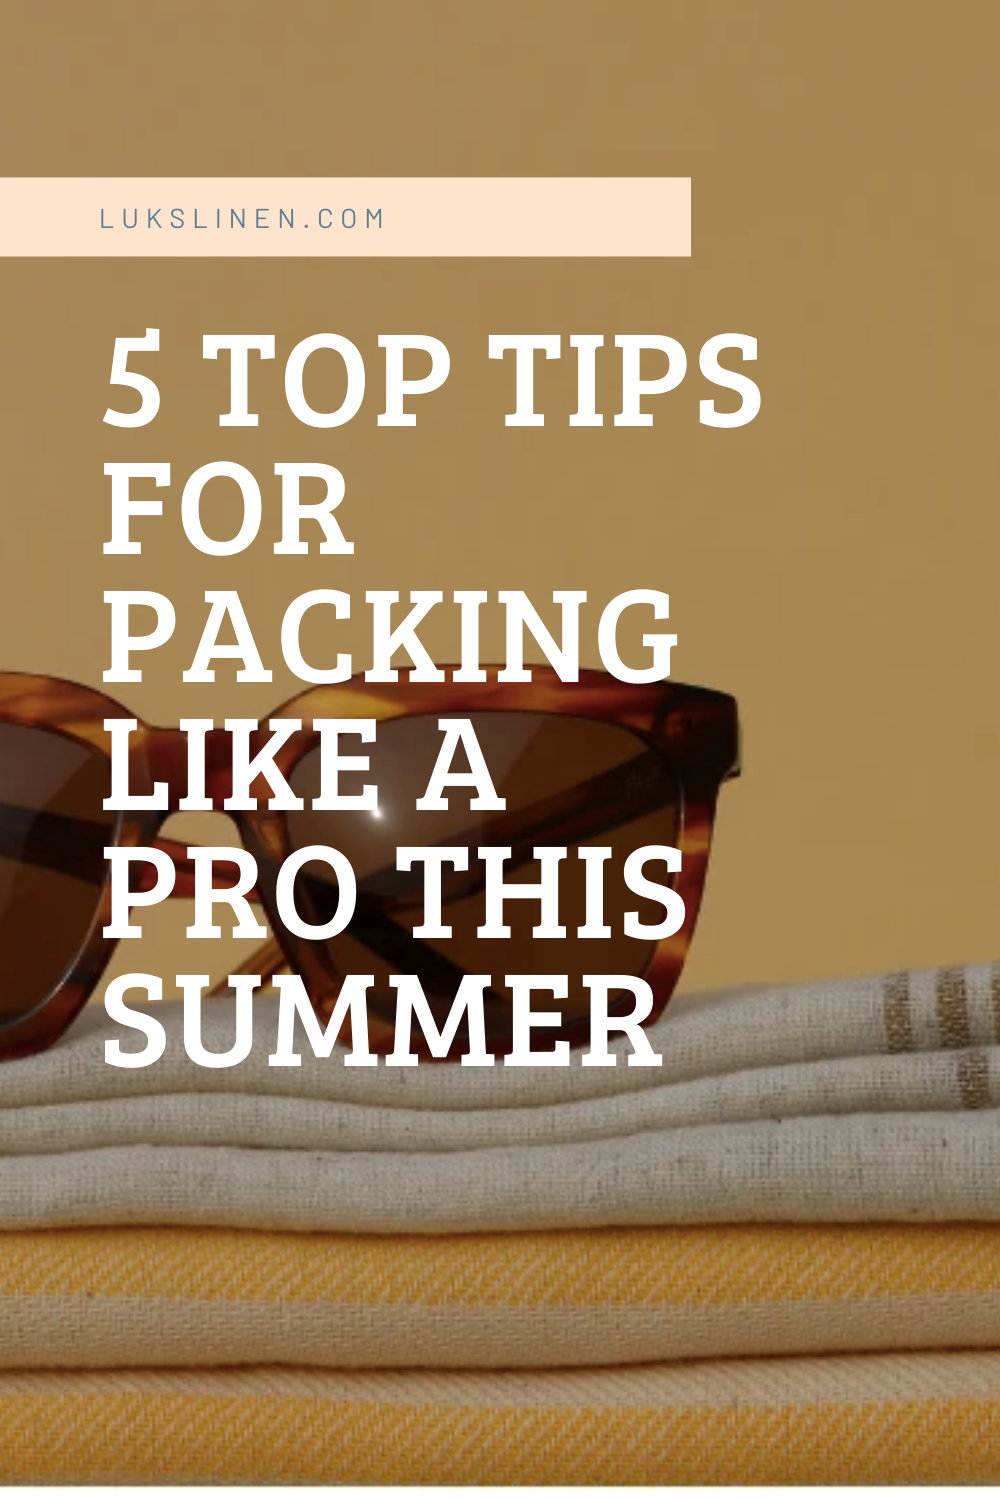 5 Top Tips for Packing like a Pro this Summer